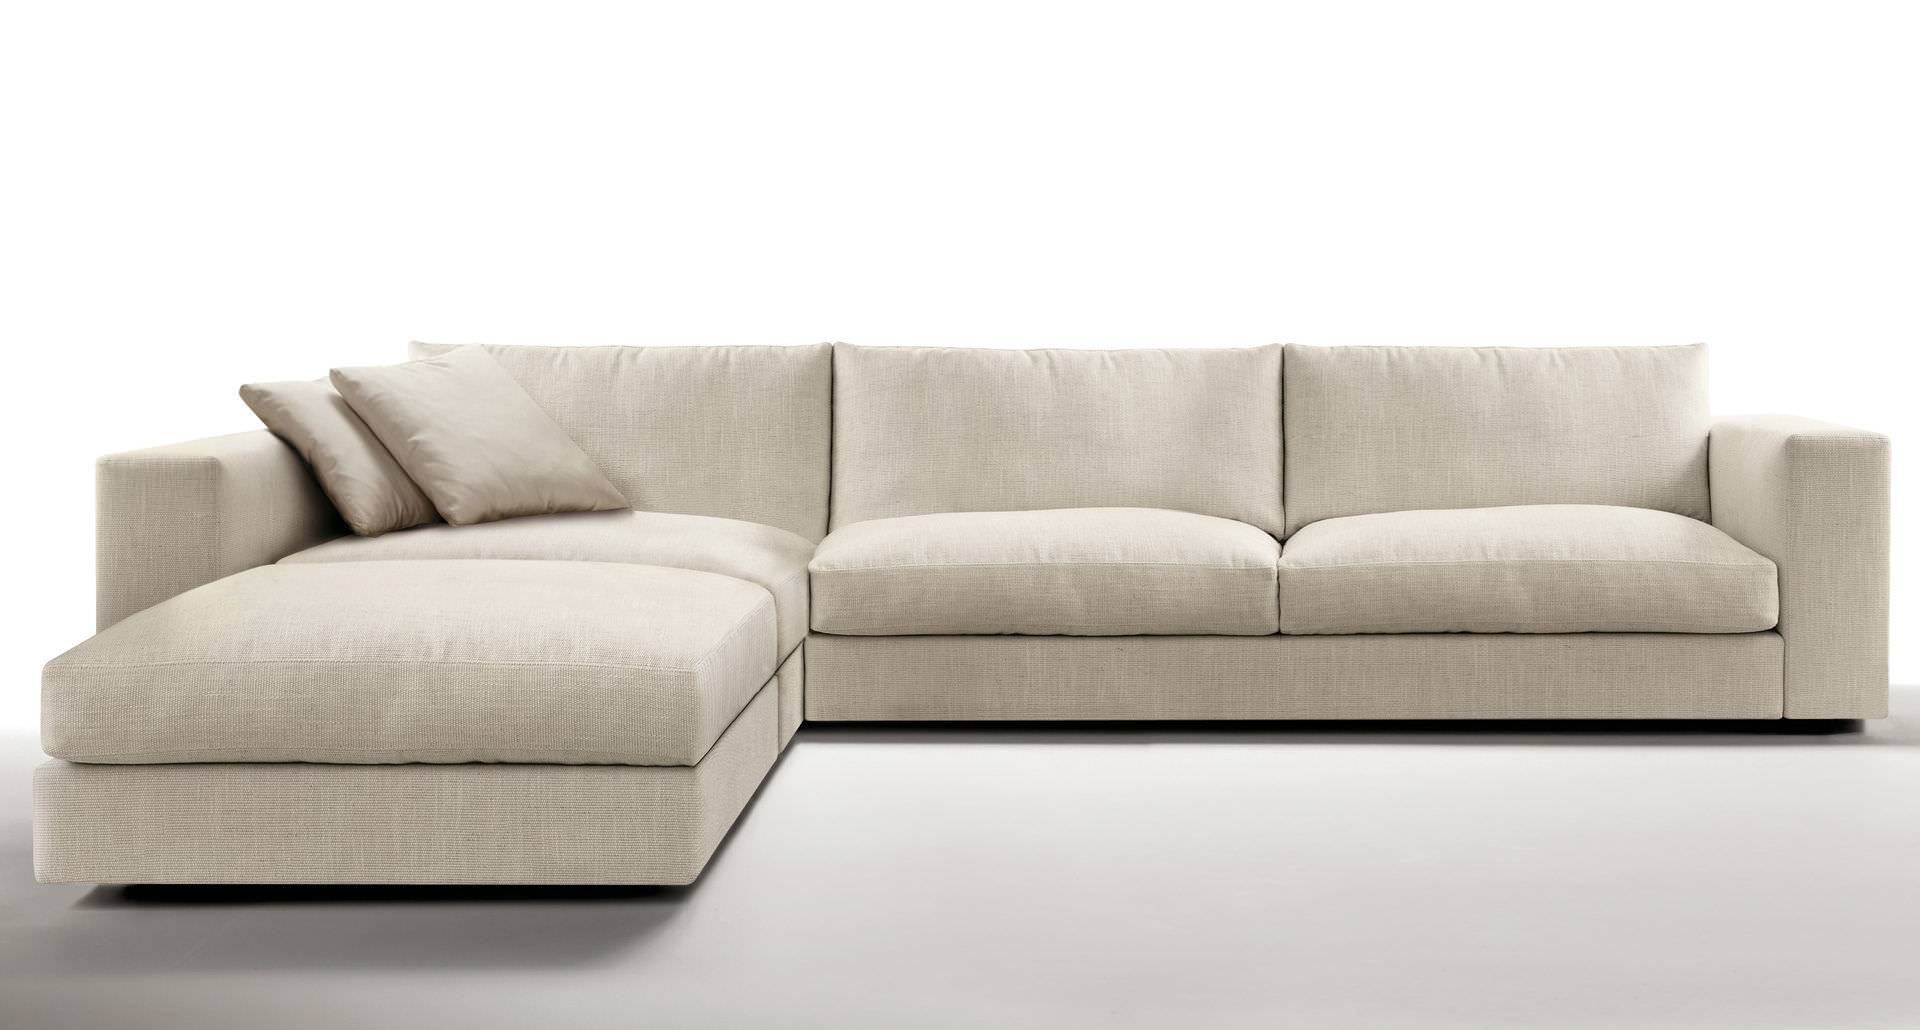 Corner Sofas For Sale Cheap | Tehranmix Decoration in Cheap Corner Sofa (Image 12 of 30)